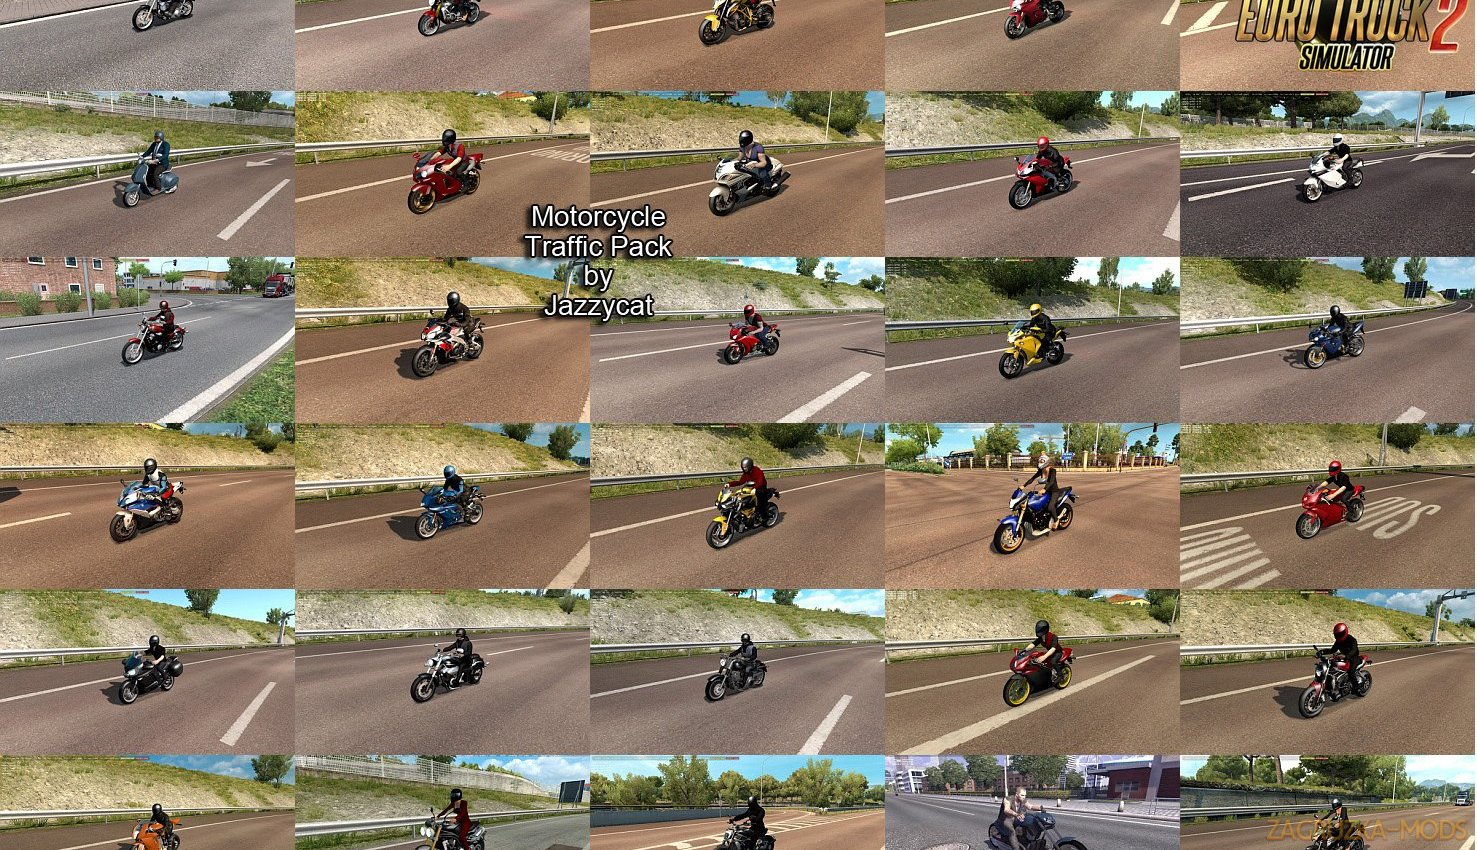 Motorcycle Traffic Pack v2.4 by Jazzycat